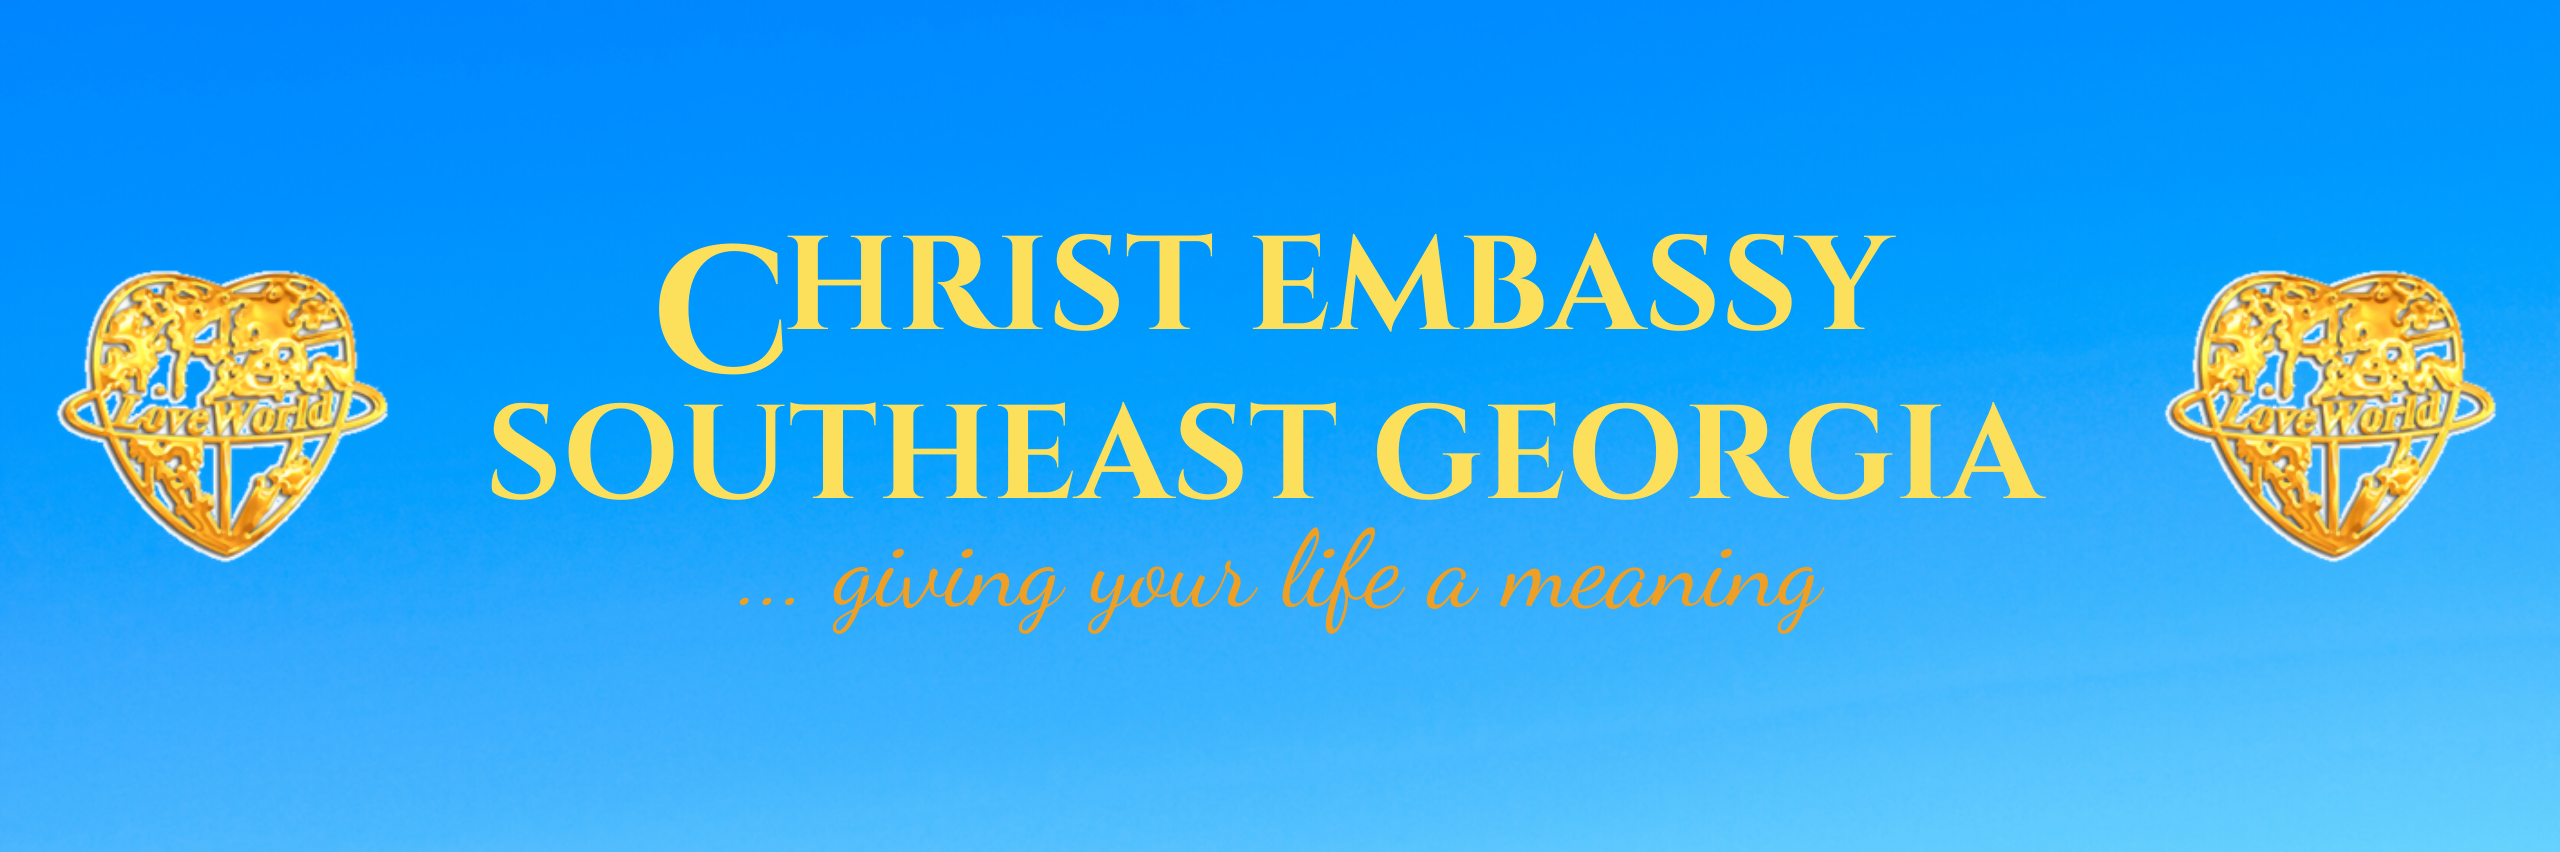 CHRIST EMBASSY SOUTH EAST GEORGIA